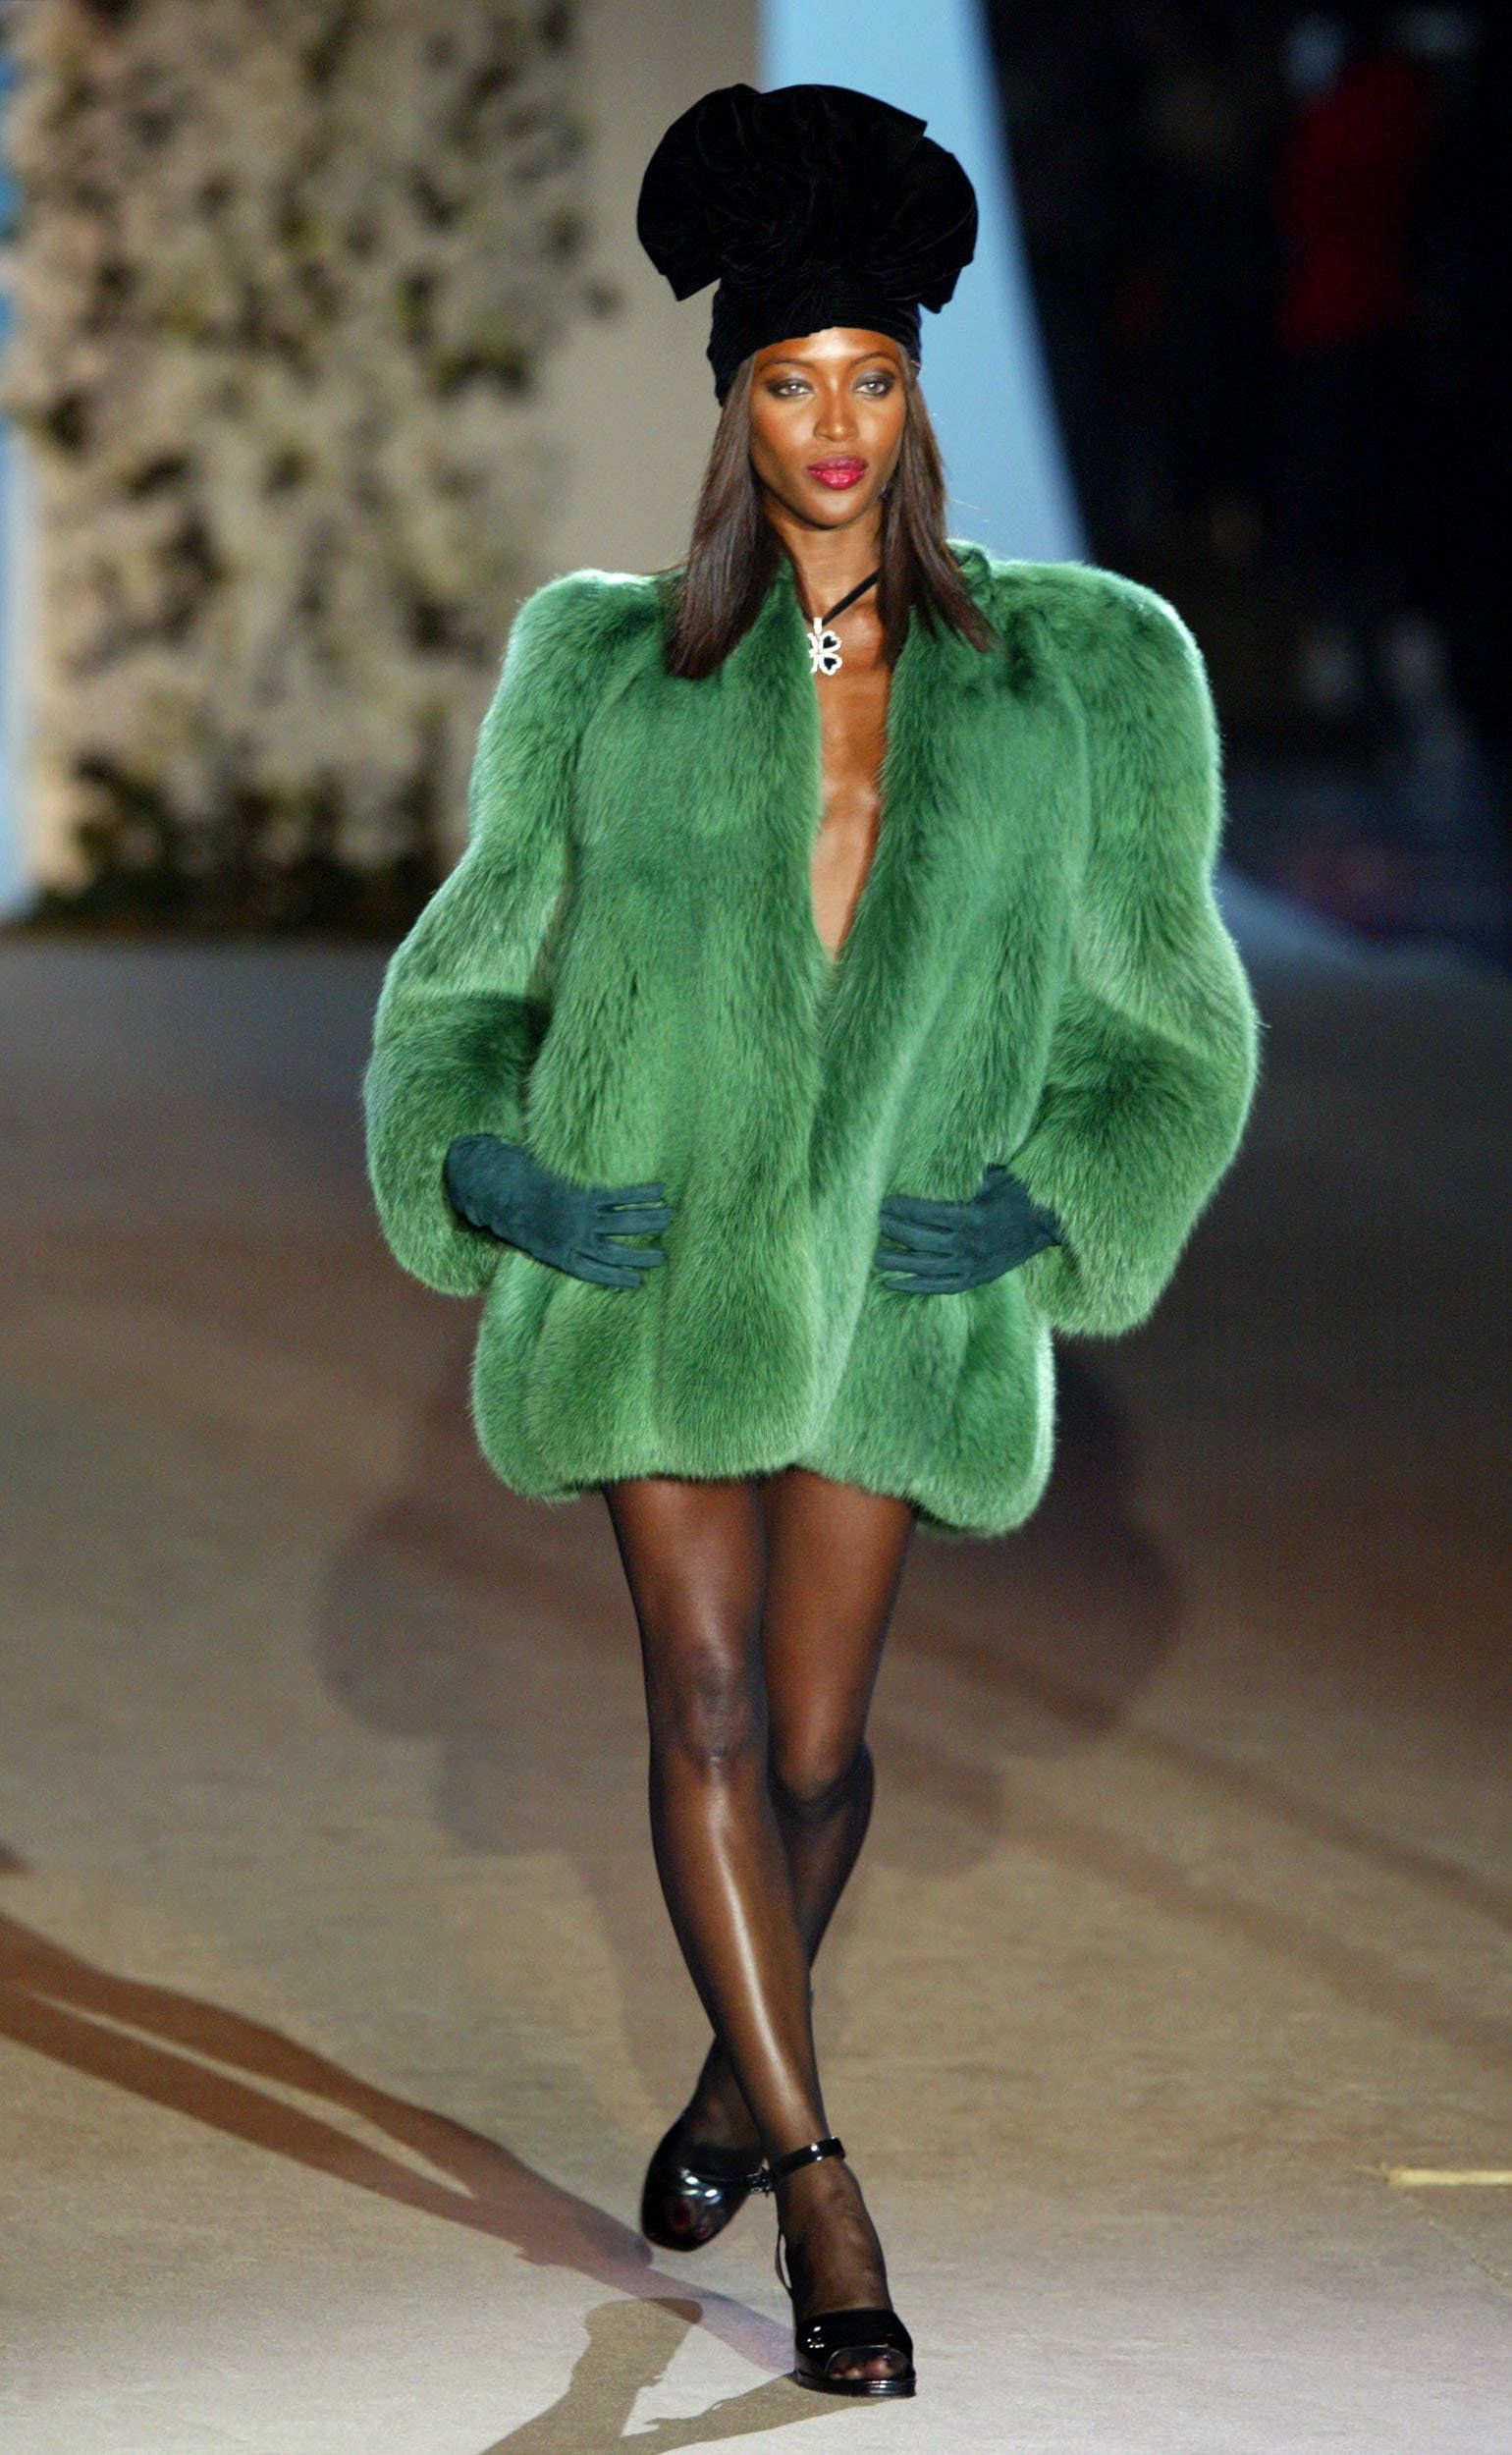 Walking the runway for a Yves Saint Laurent show in Paris, during a retrospective for the designer.